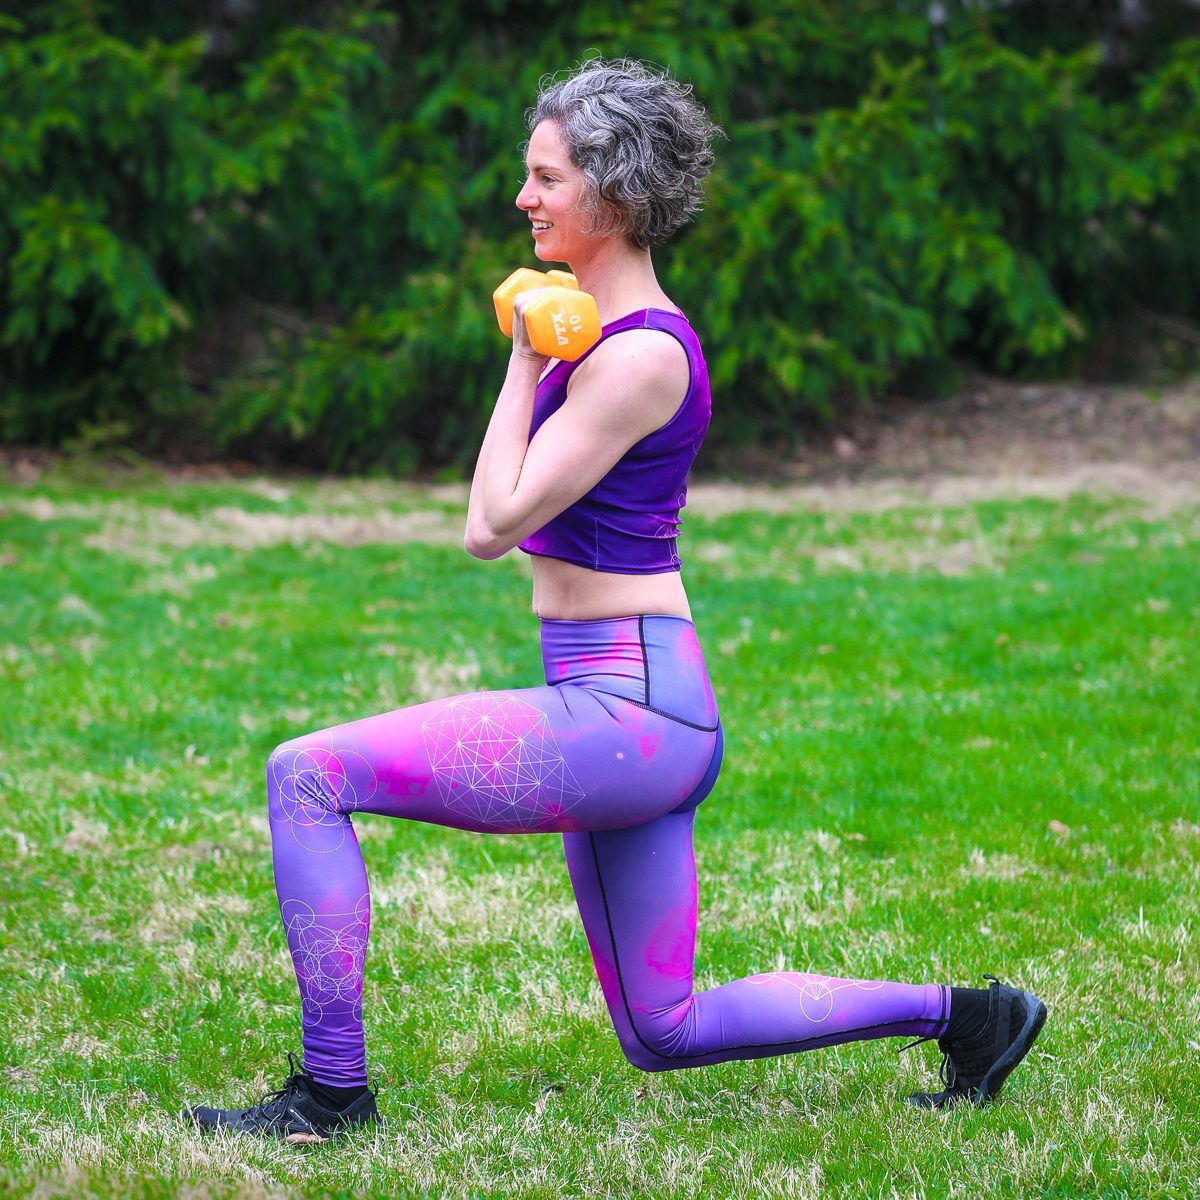 21 Day fix review: Lunges